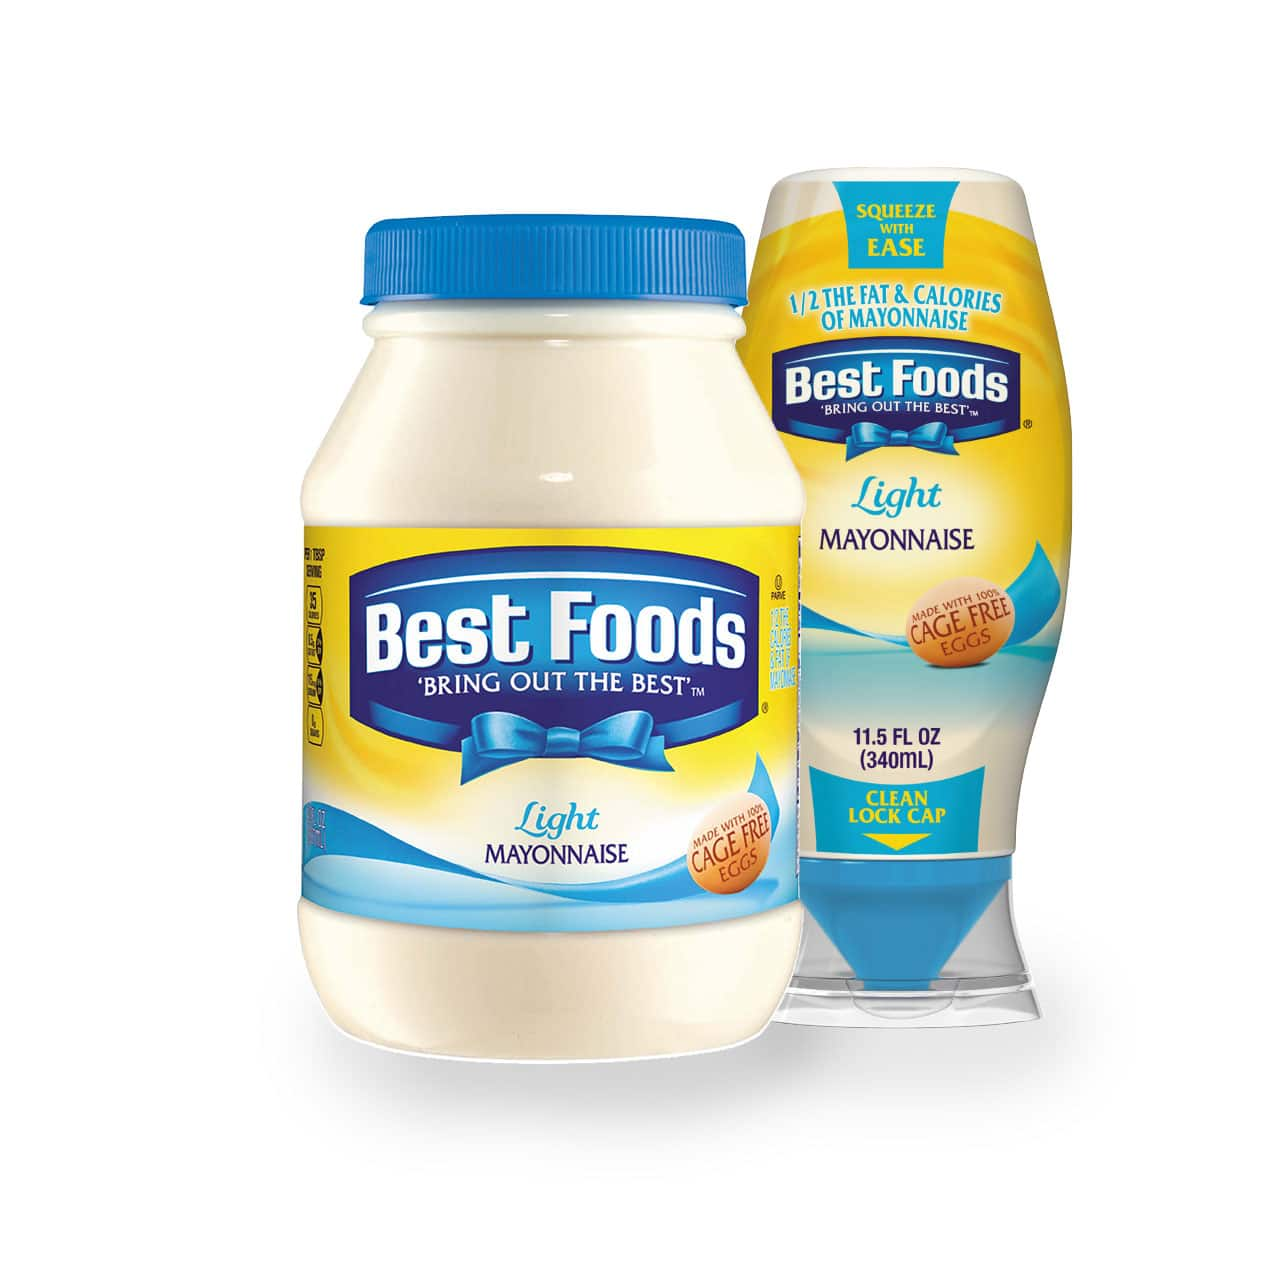 Mayonnaise Best Foods Calories